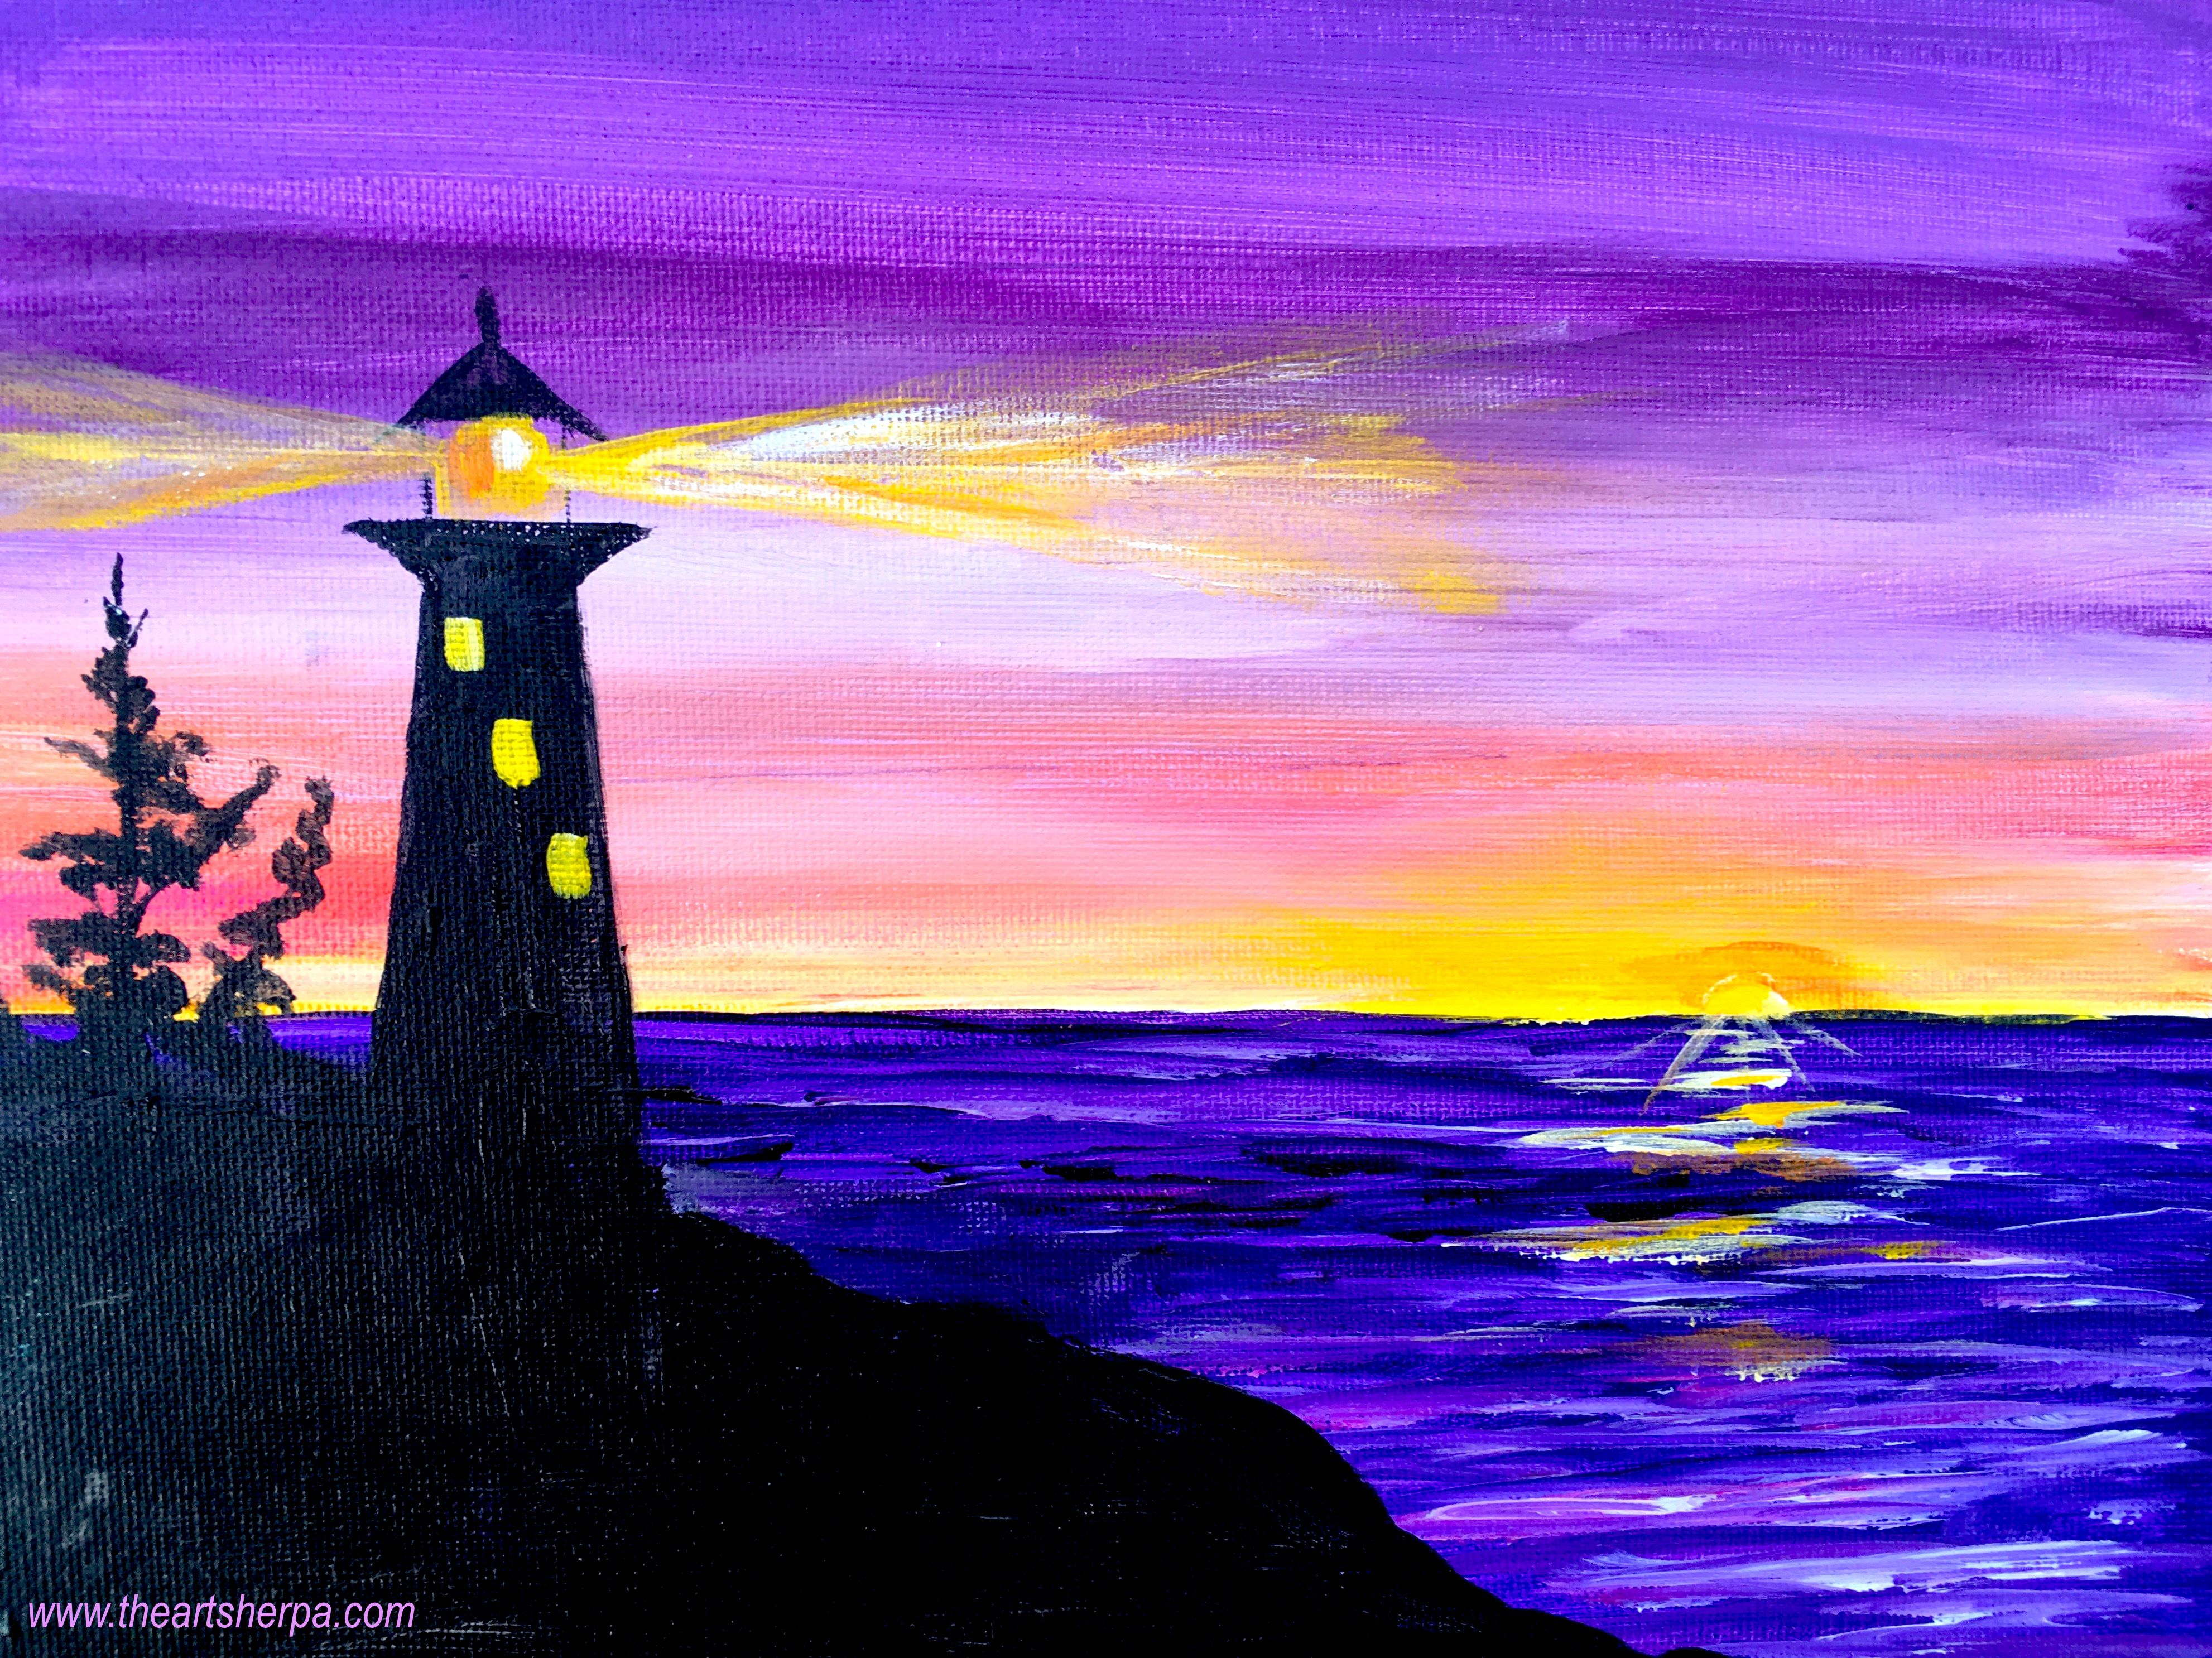 Easy Sunrise Painting Of A Silhouette Lighthouse With Light On This Is Fully Guided Real Time Step By Acrylic Art Lesson For Beginners